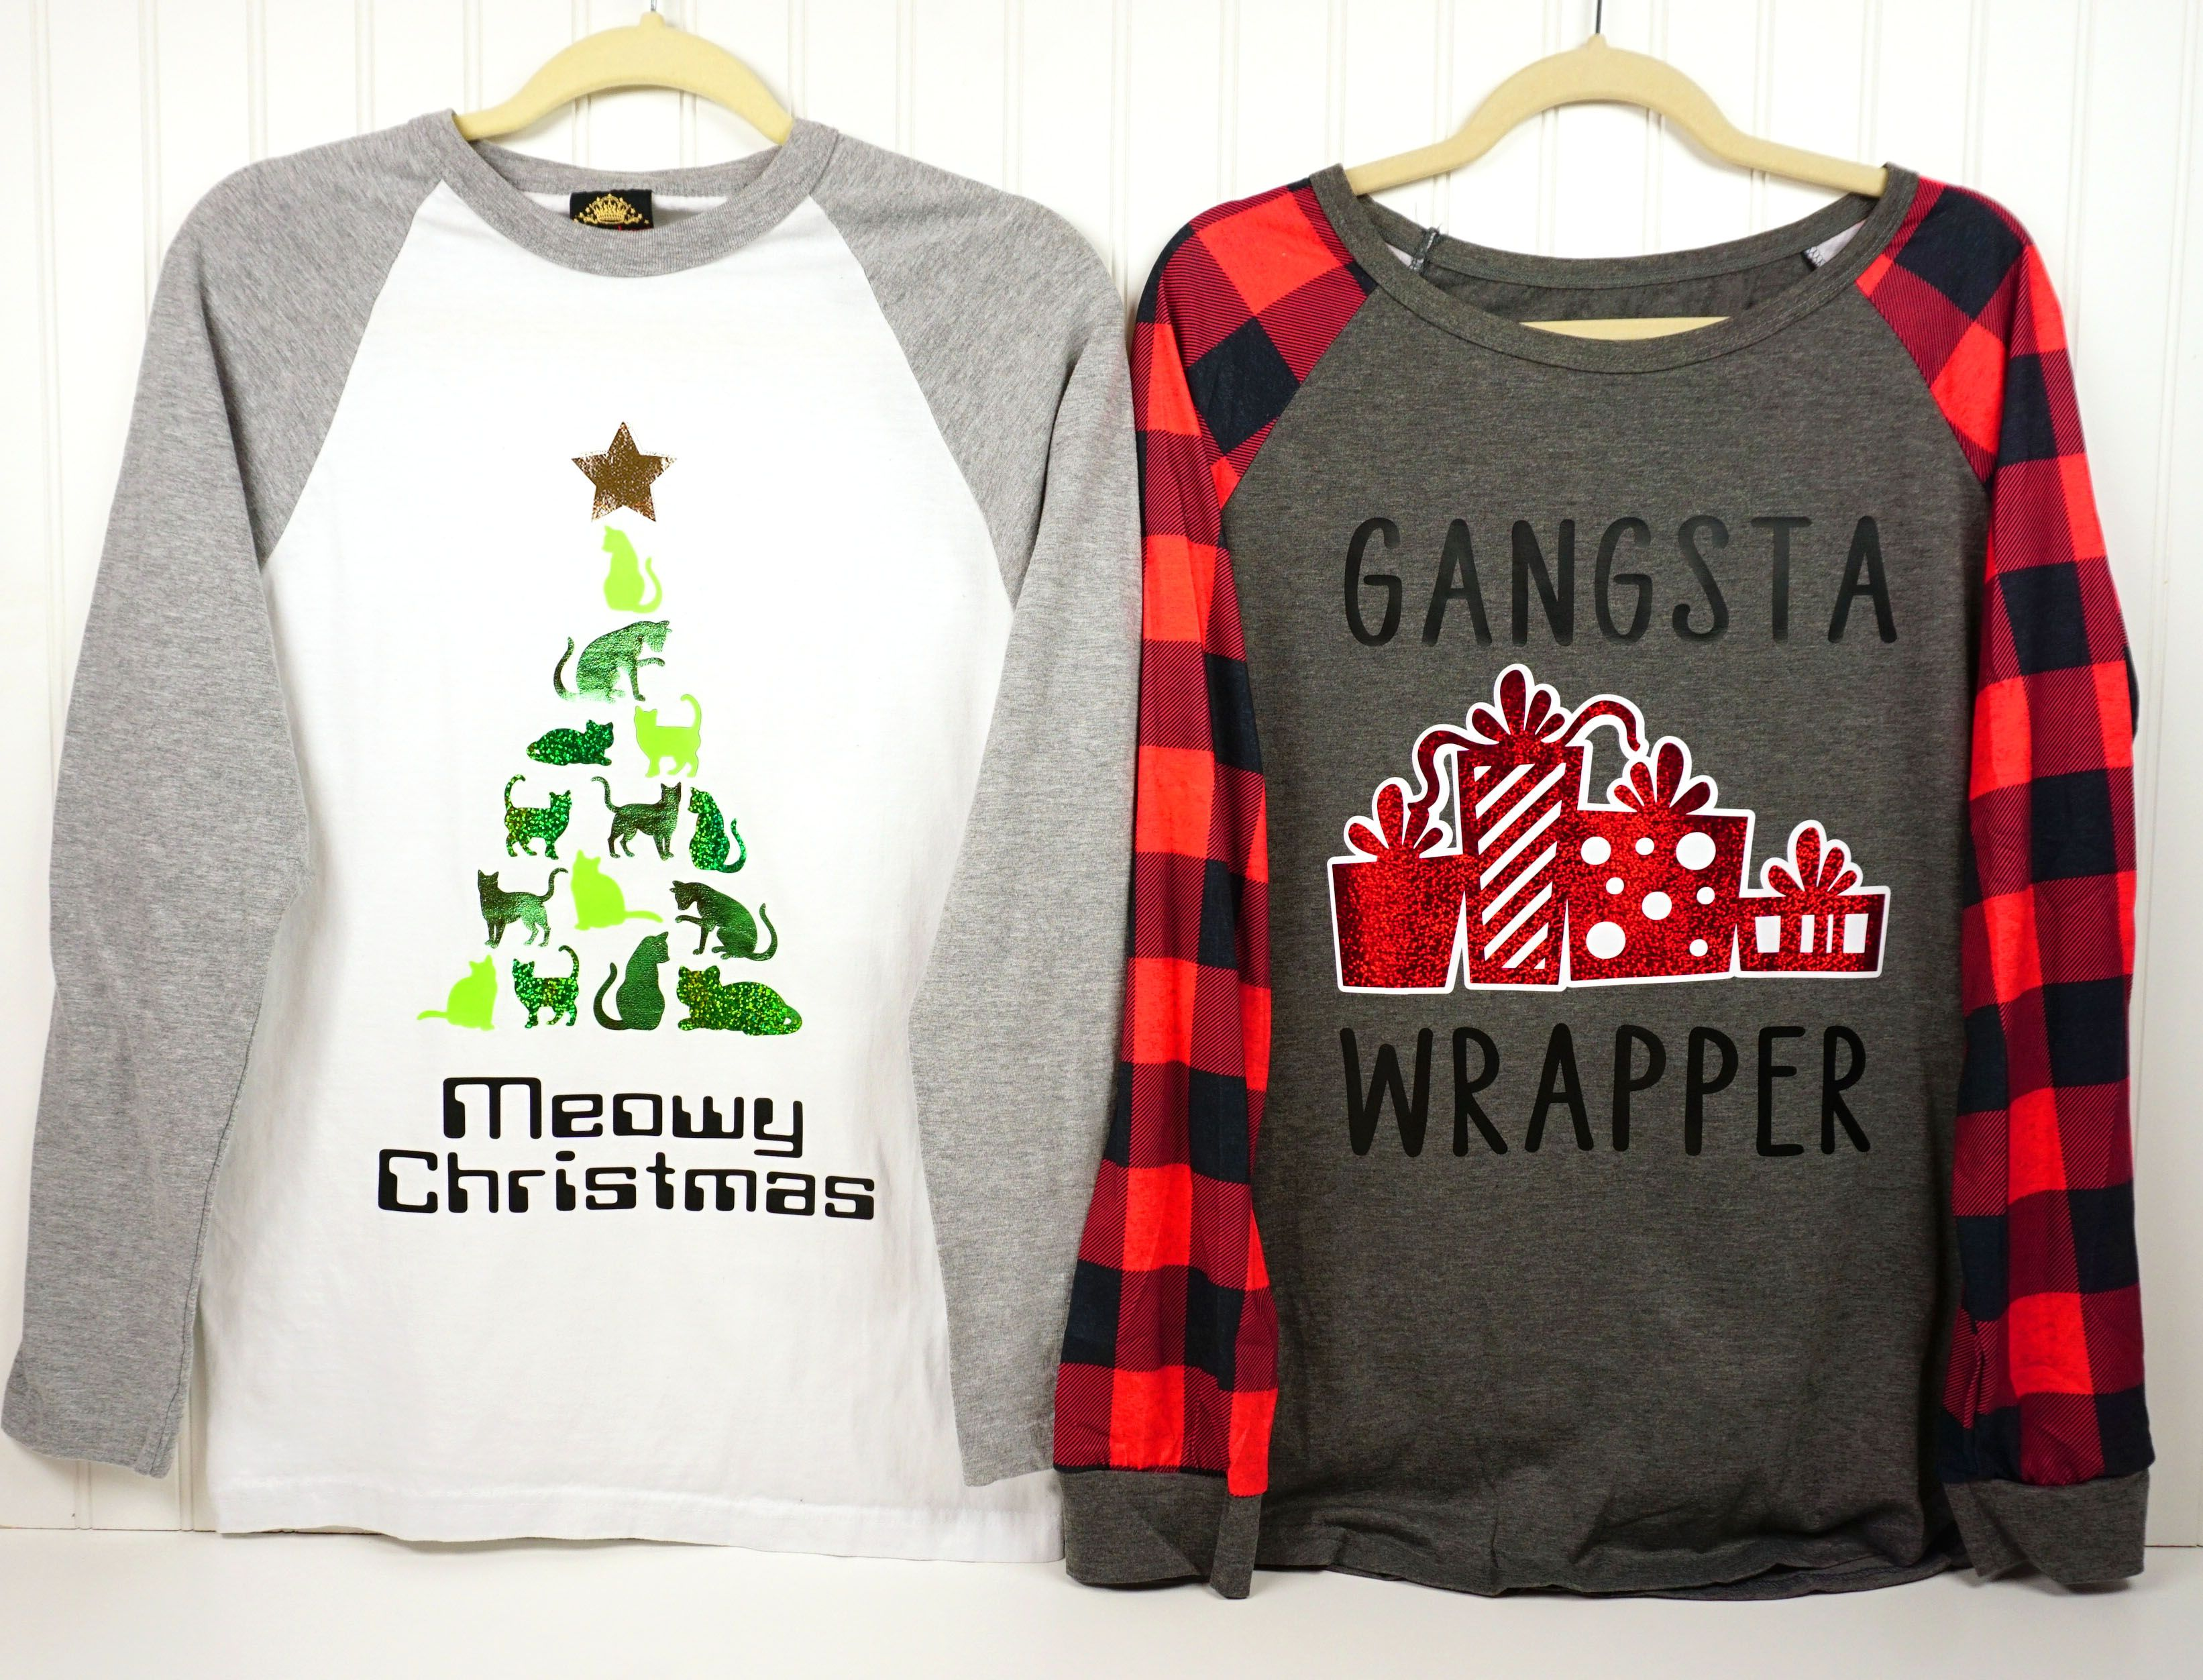 085926e3242 These DIY funny Christmas shirts are quick and easy to make with Cricut!  Free Cricut Christmas cut files included!